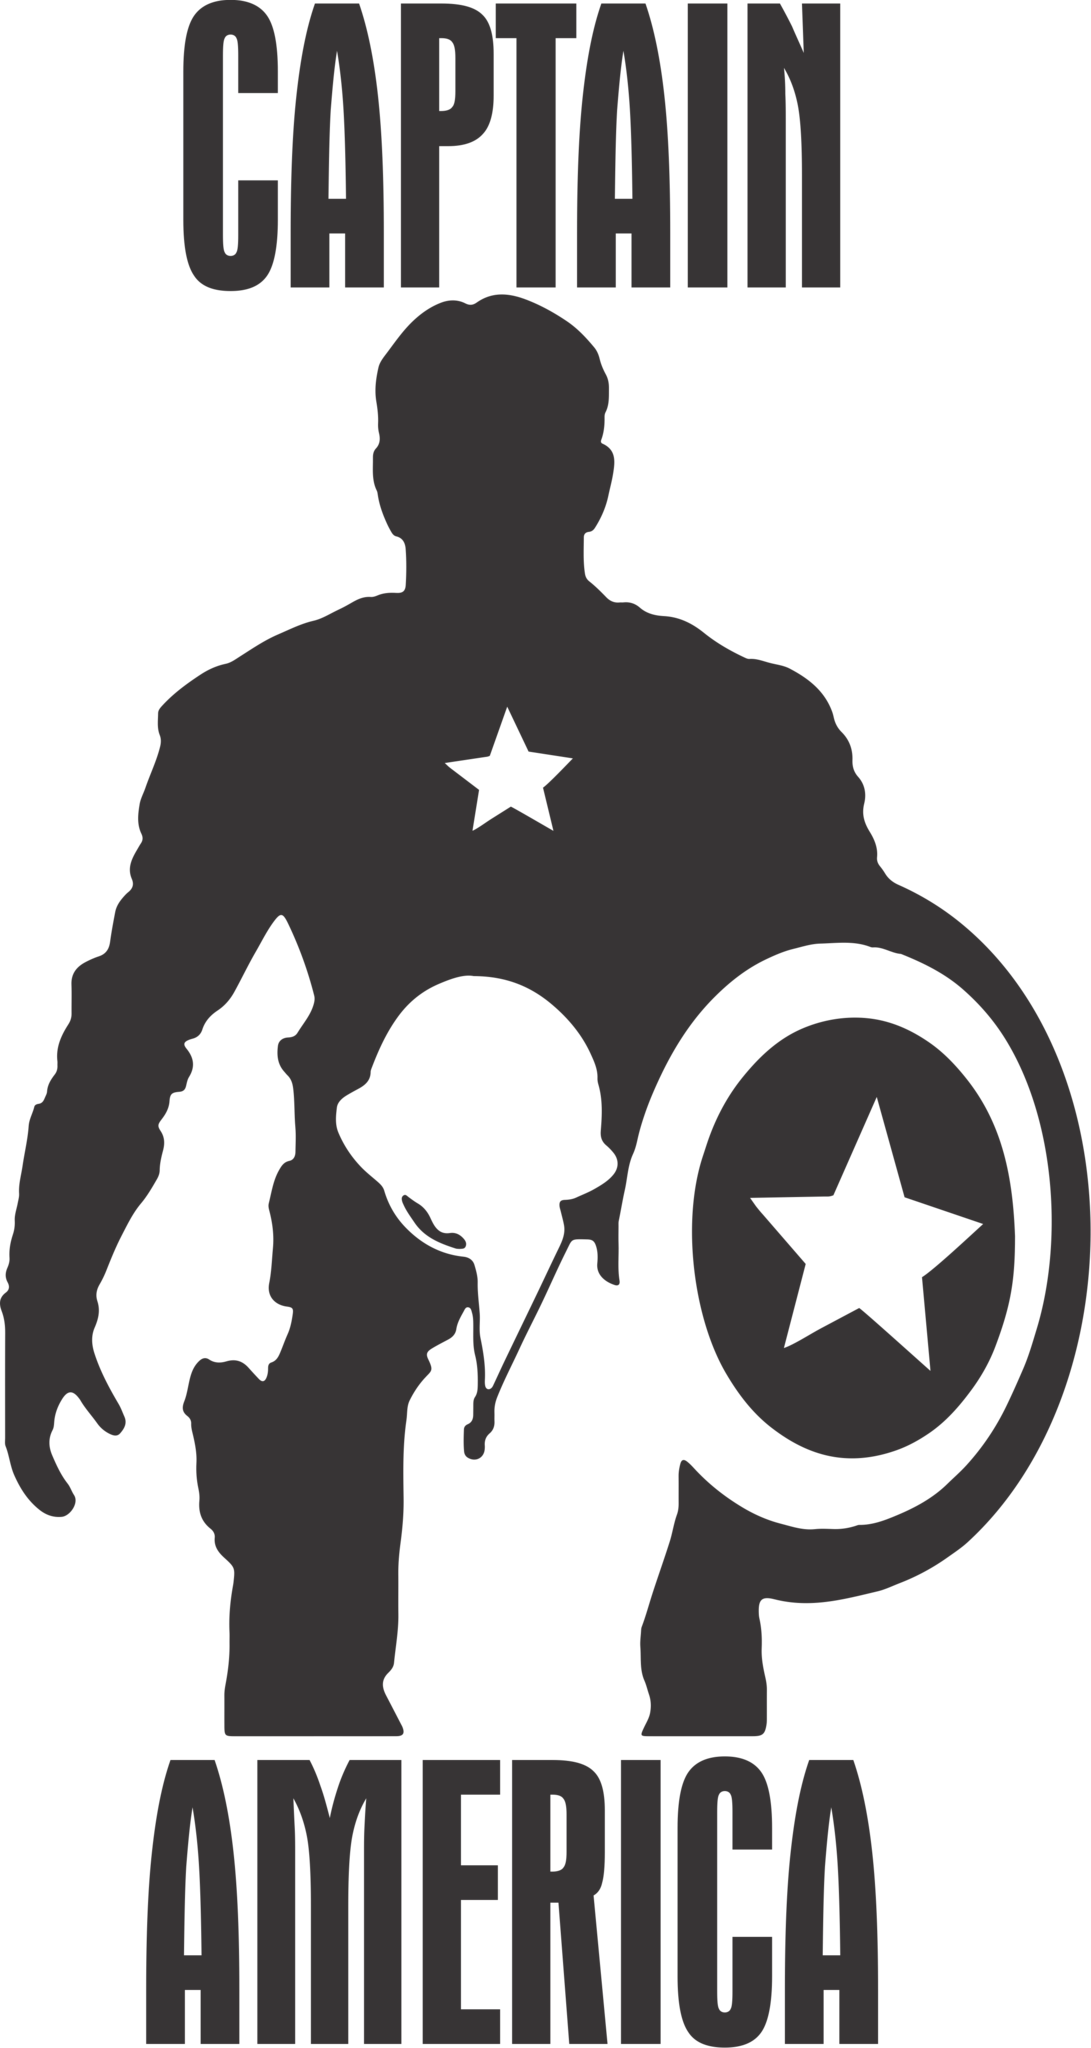 Svg silhouette captain america. Guided by faith designs